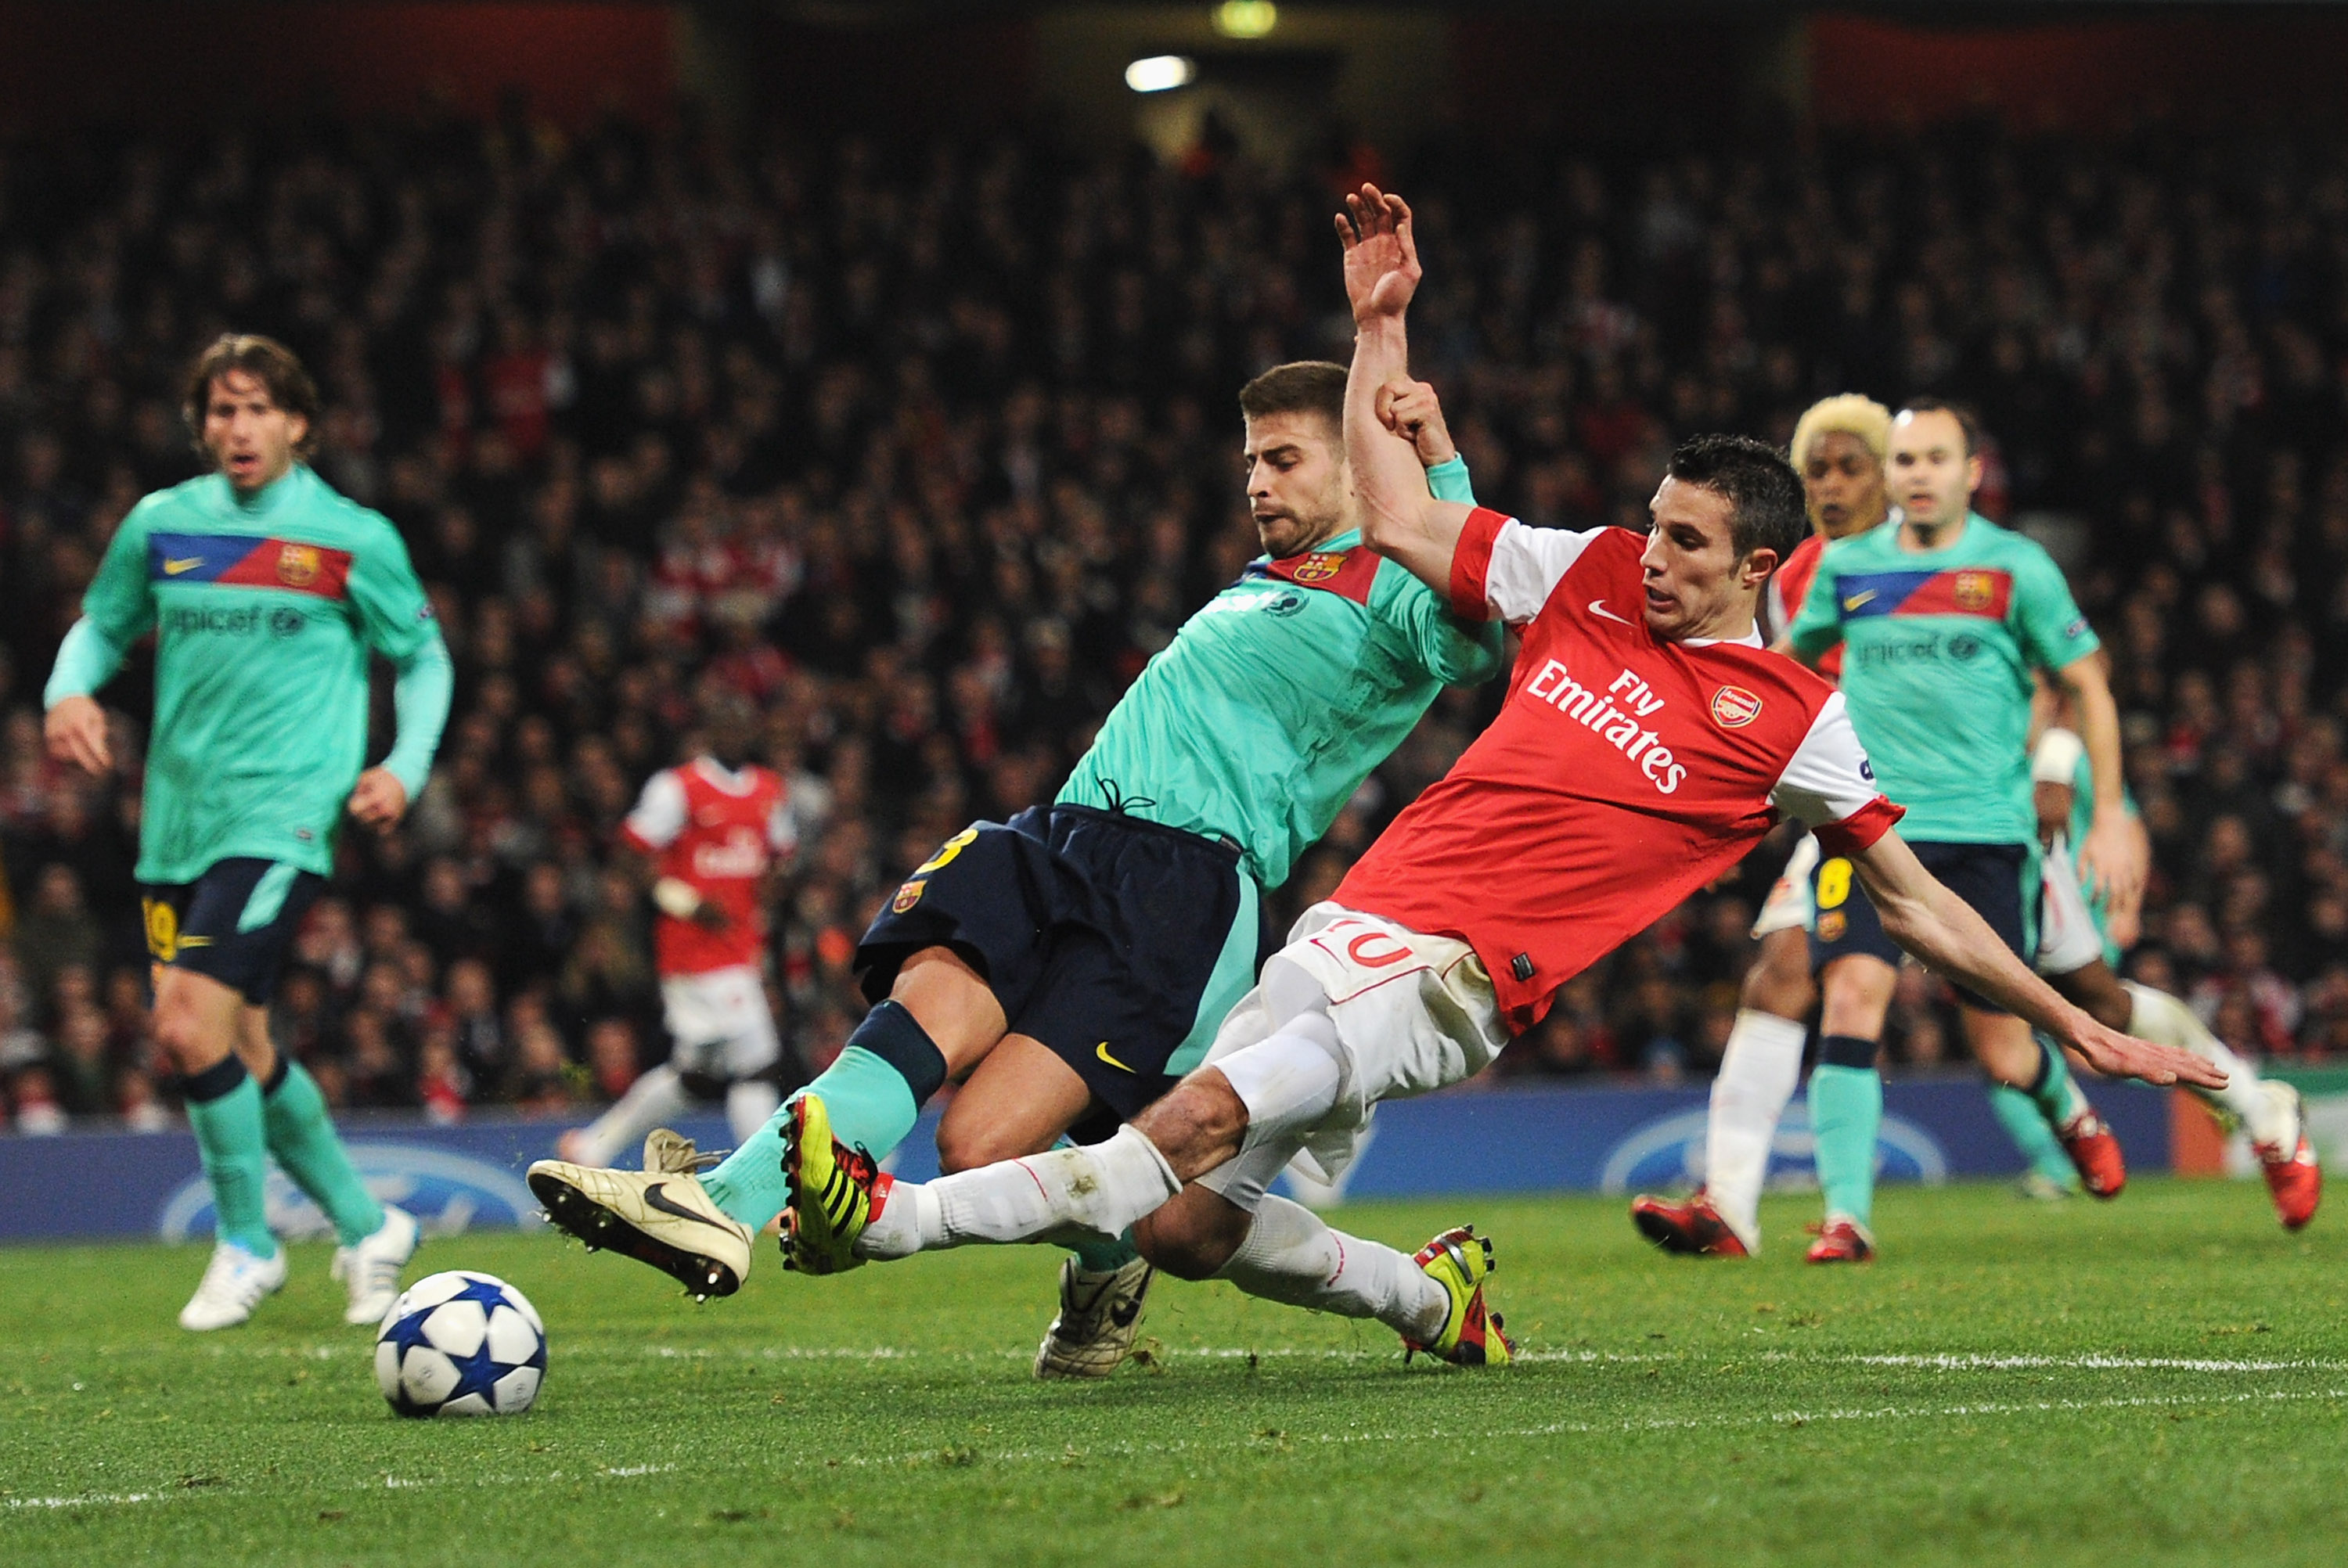 LONDON, ENGLAND - FEBRUARY 16:  Robin van Persie of Arsenal shoots at goal under a challenge by Gerard Pique of Barcelona during the UEFA Champions League round of 16 first leg match between Arsenal and Barcelona at the Emirates Stadium on February 16, 20